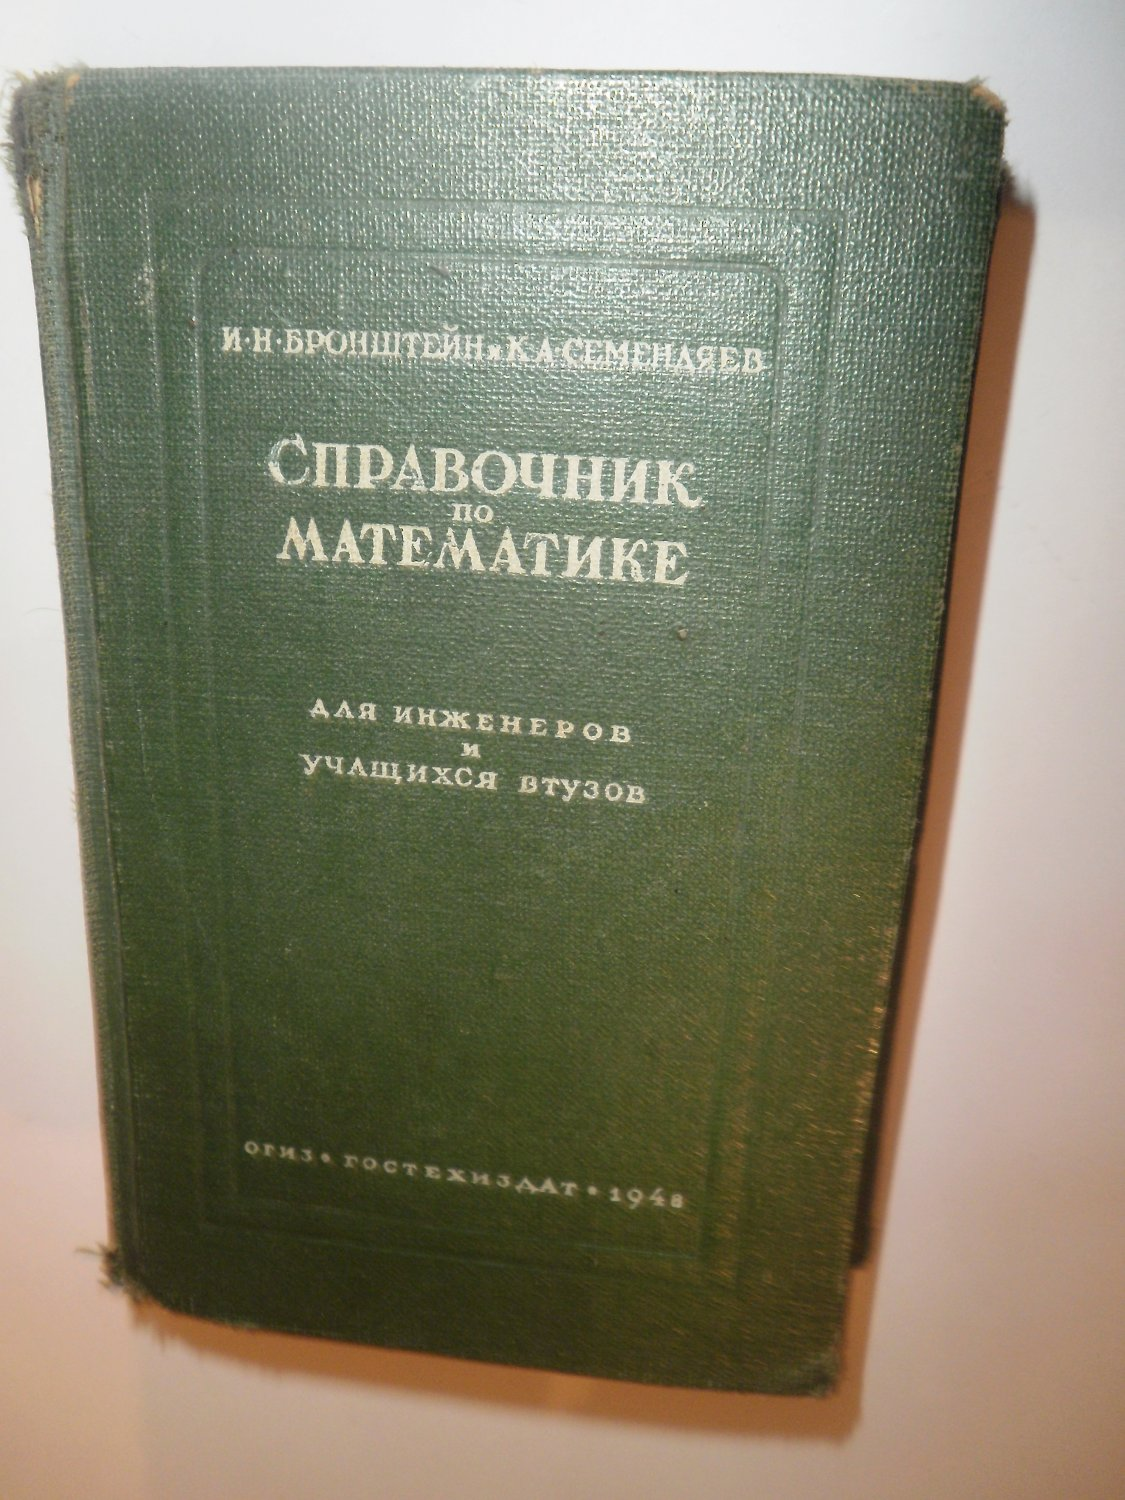 Reference Book on Mathematics by I. Bronshtein